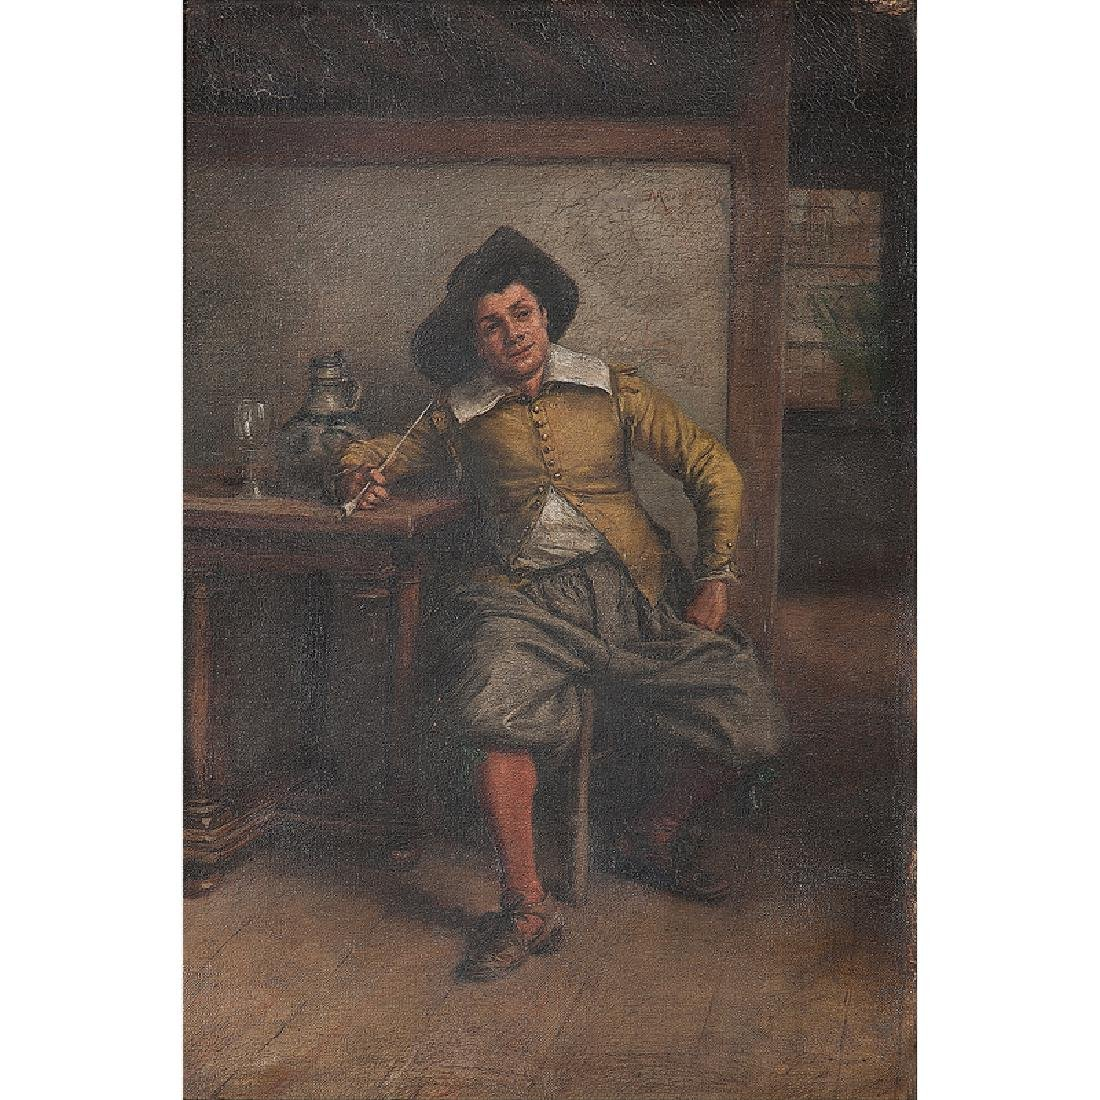 In the Manner of Jean-Charles Meissonier (French,